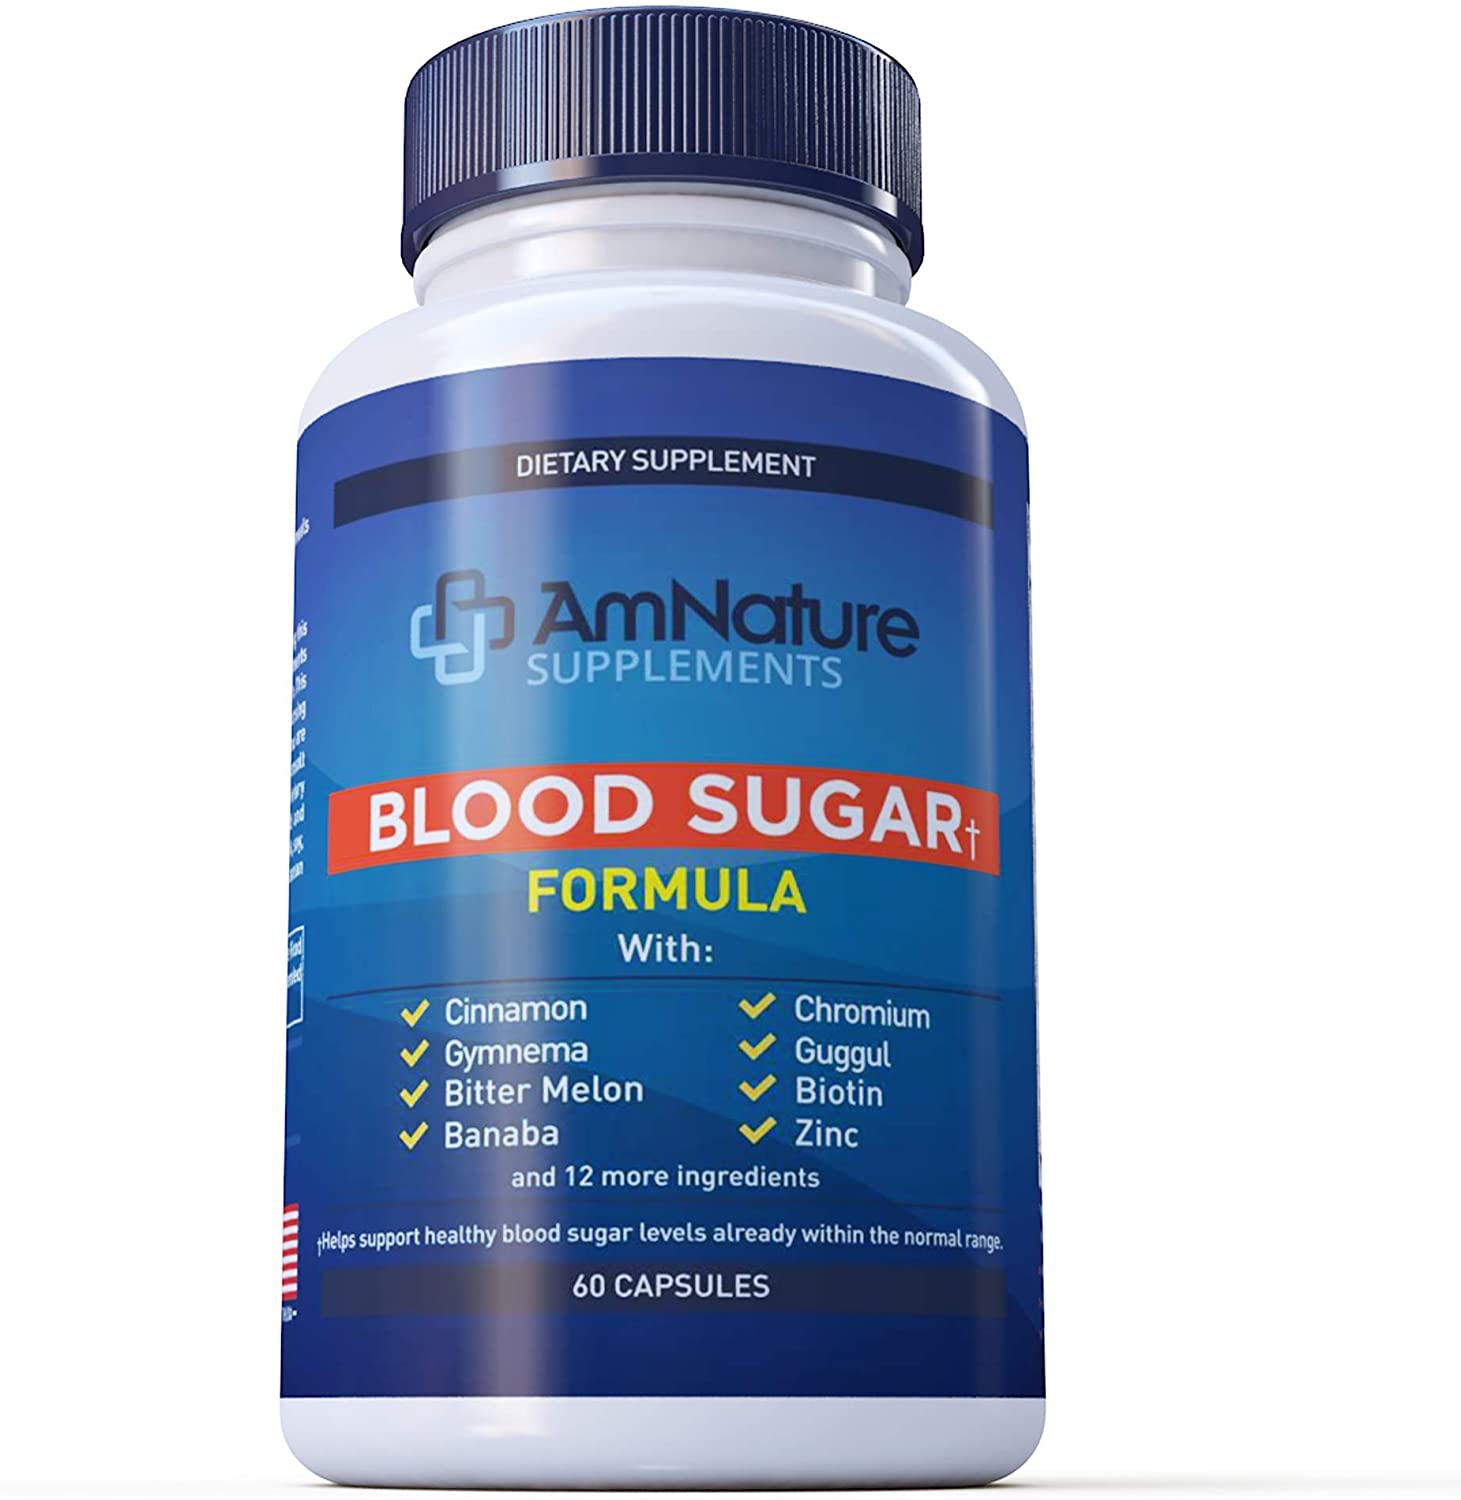 Blood Sugar Level Support Supplement - 20 Herbs & Multivitamin for Healthy Blood Sugar Within Control with Alpha Lipoic Acid & Cinnamon - 60 Pills - AmNature Supplements